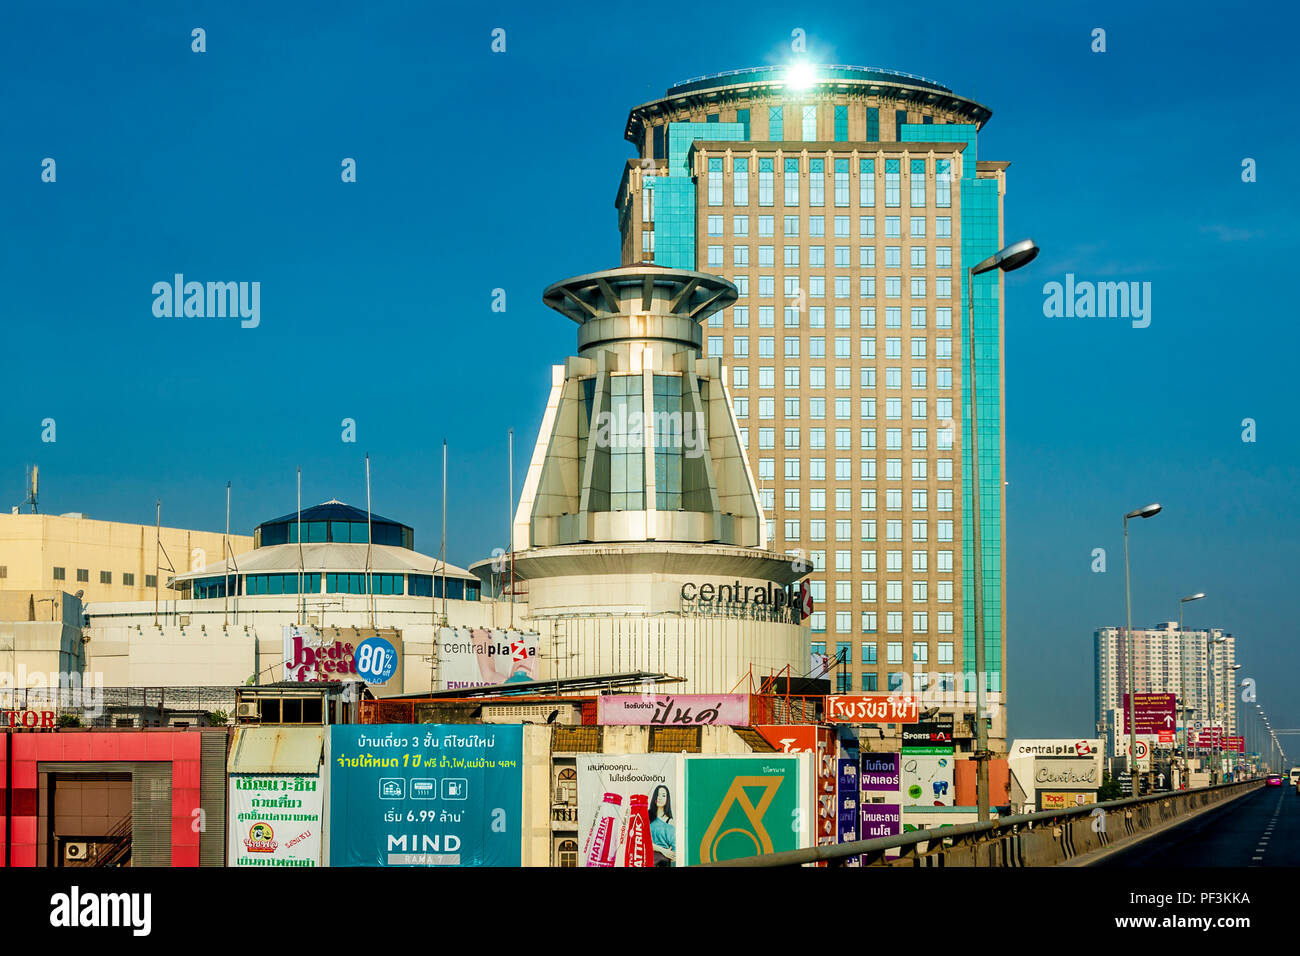 One big highlight on the top of one of Bangko's buildings close to the freeway. Clear blue sky. - Stock Image